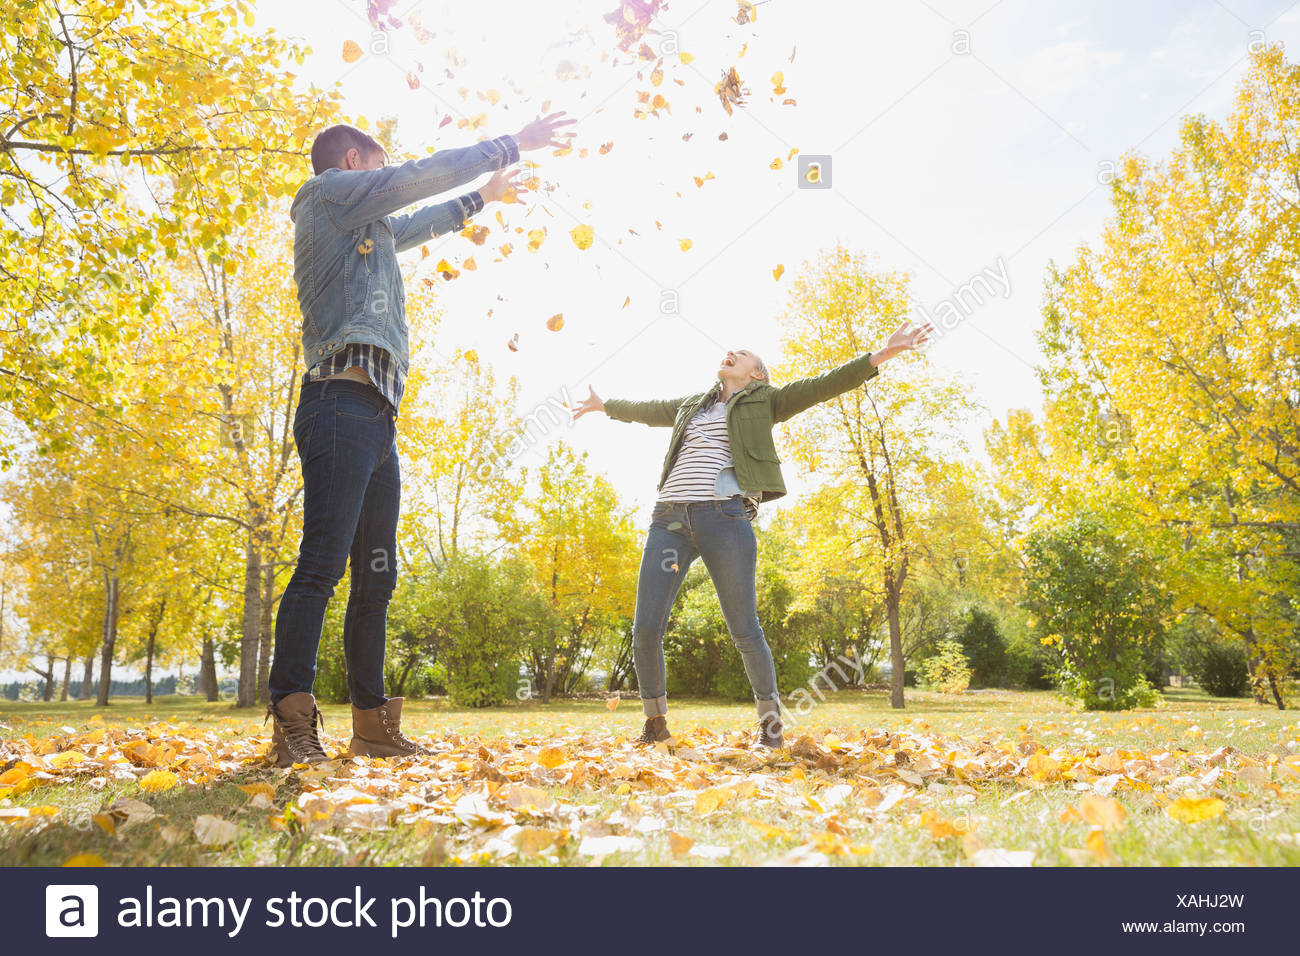 Cheerful couple playing with autumn leaves - Stock Image